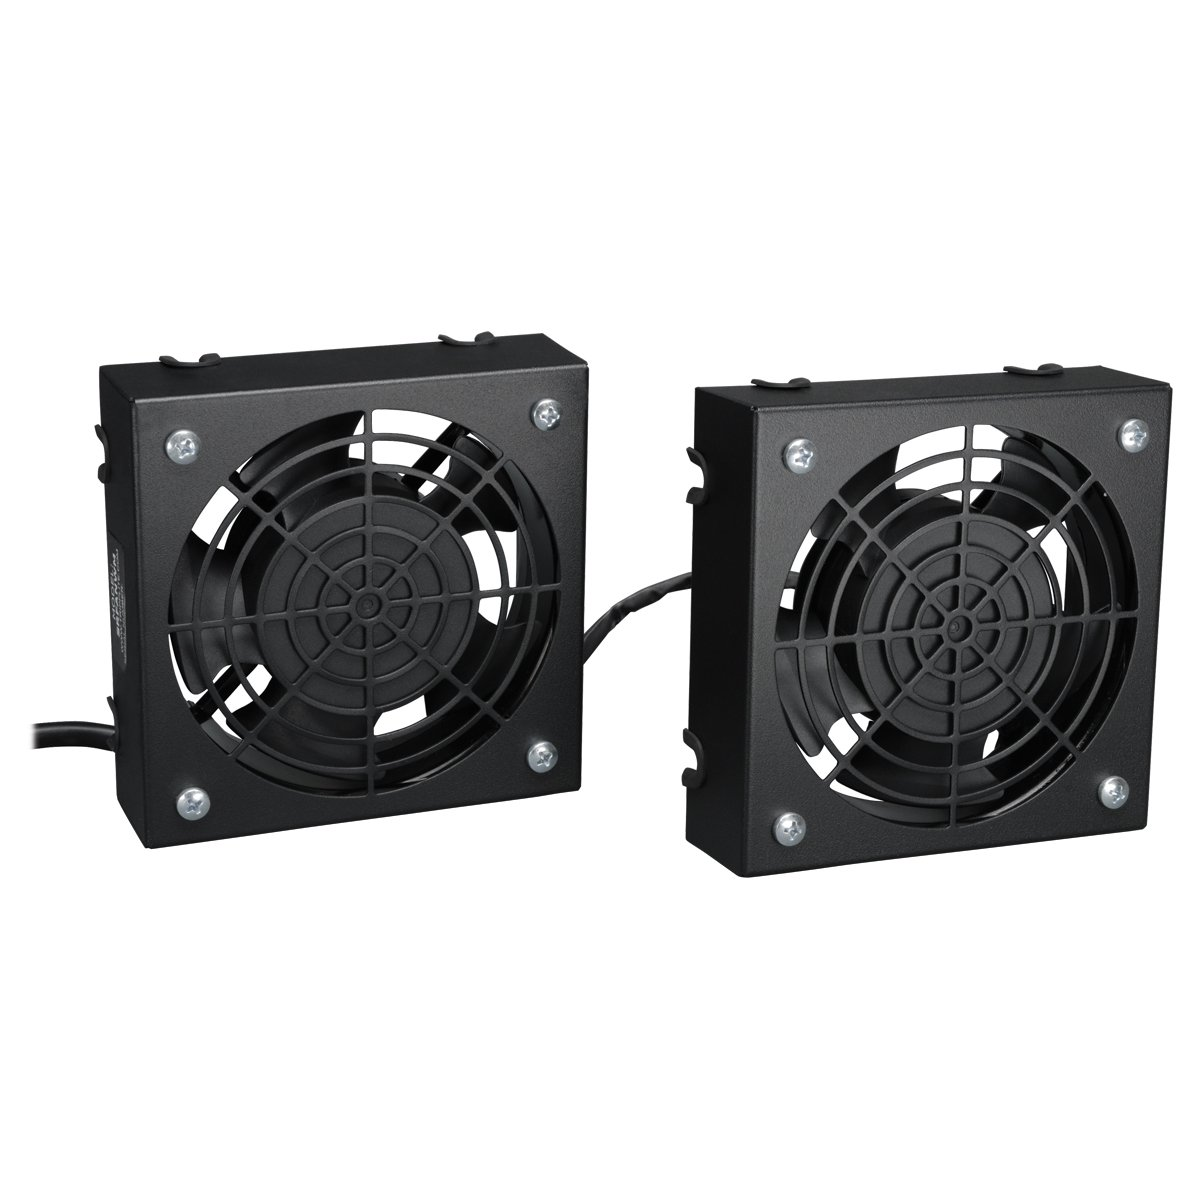 Amazon.com: Tripp Lite Wall Mount Roof Fan Kit, 2 High Performance Fans,  120V, 210 CFM, 5 15P Plug (SRFANWM): Computers U0026 Accessories